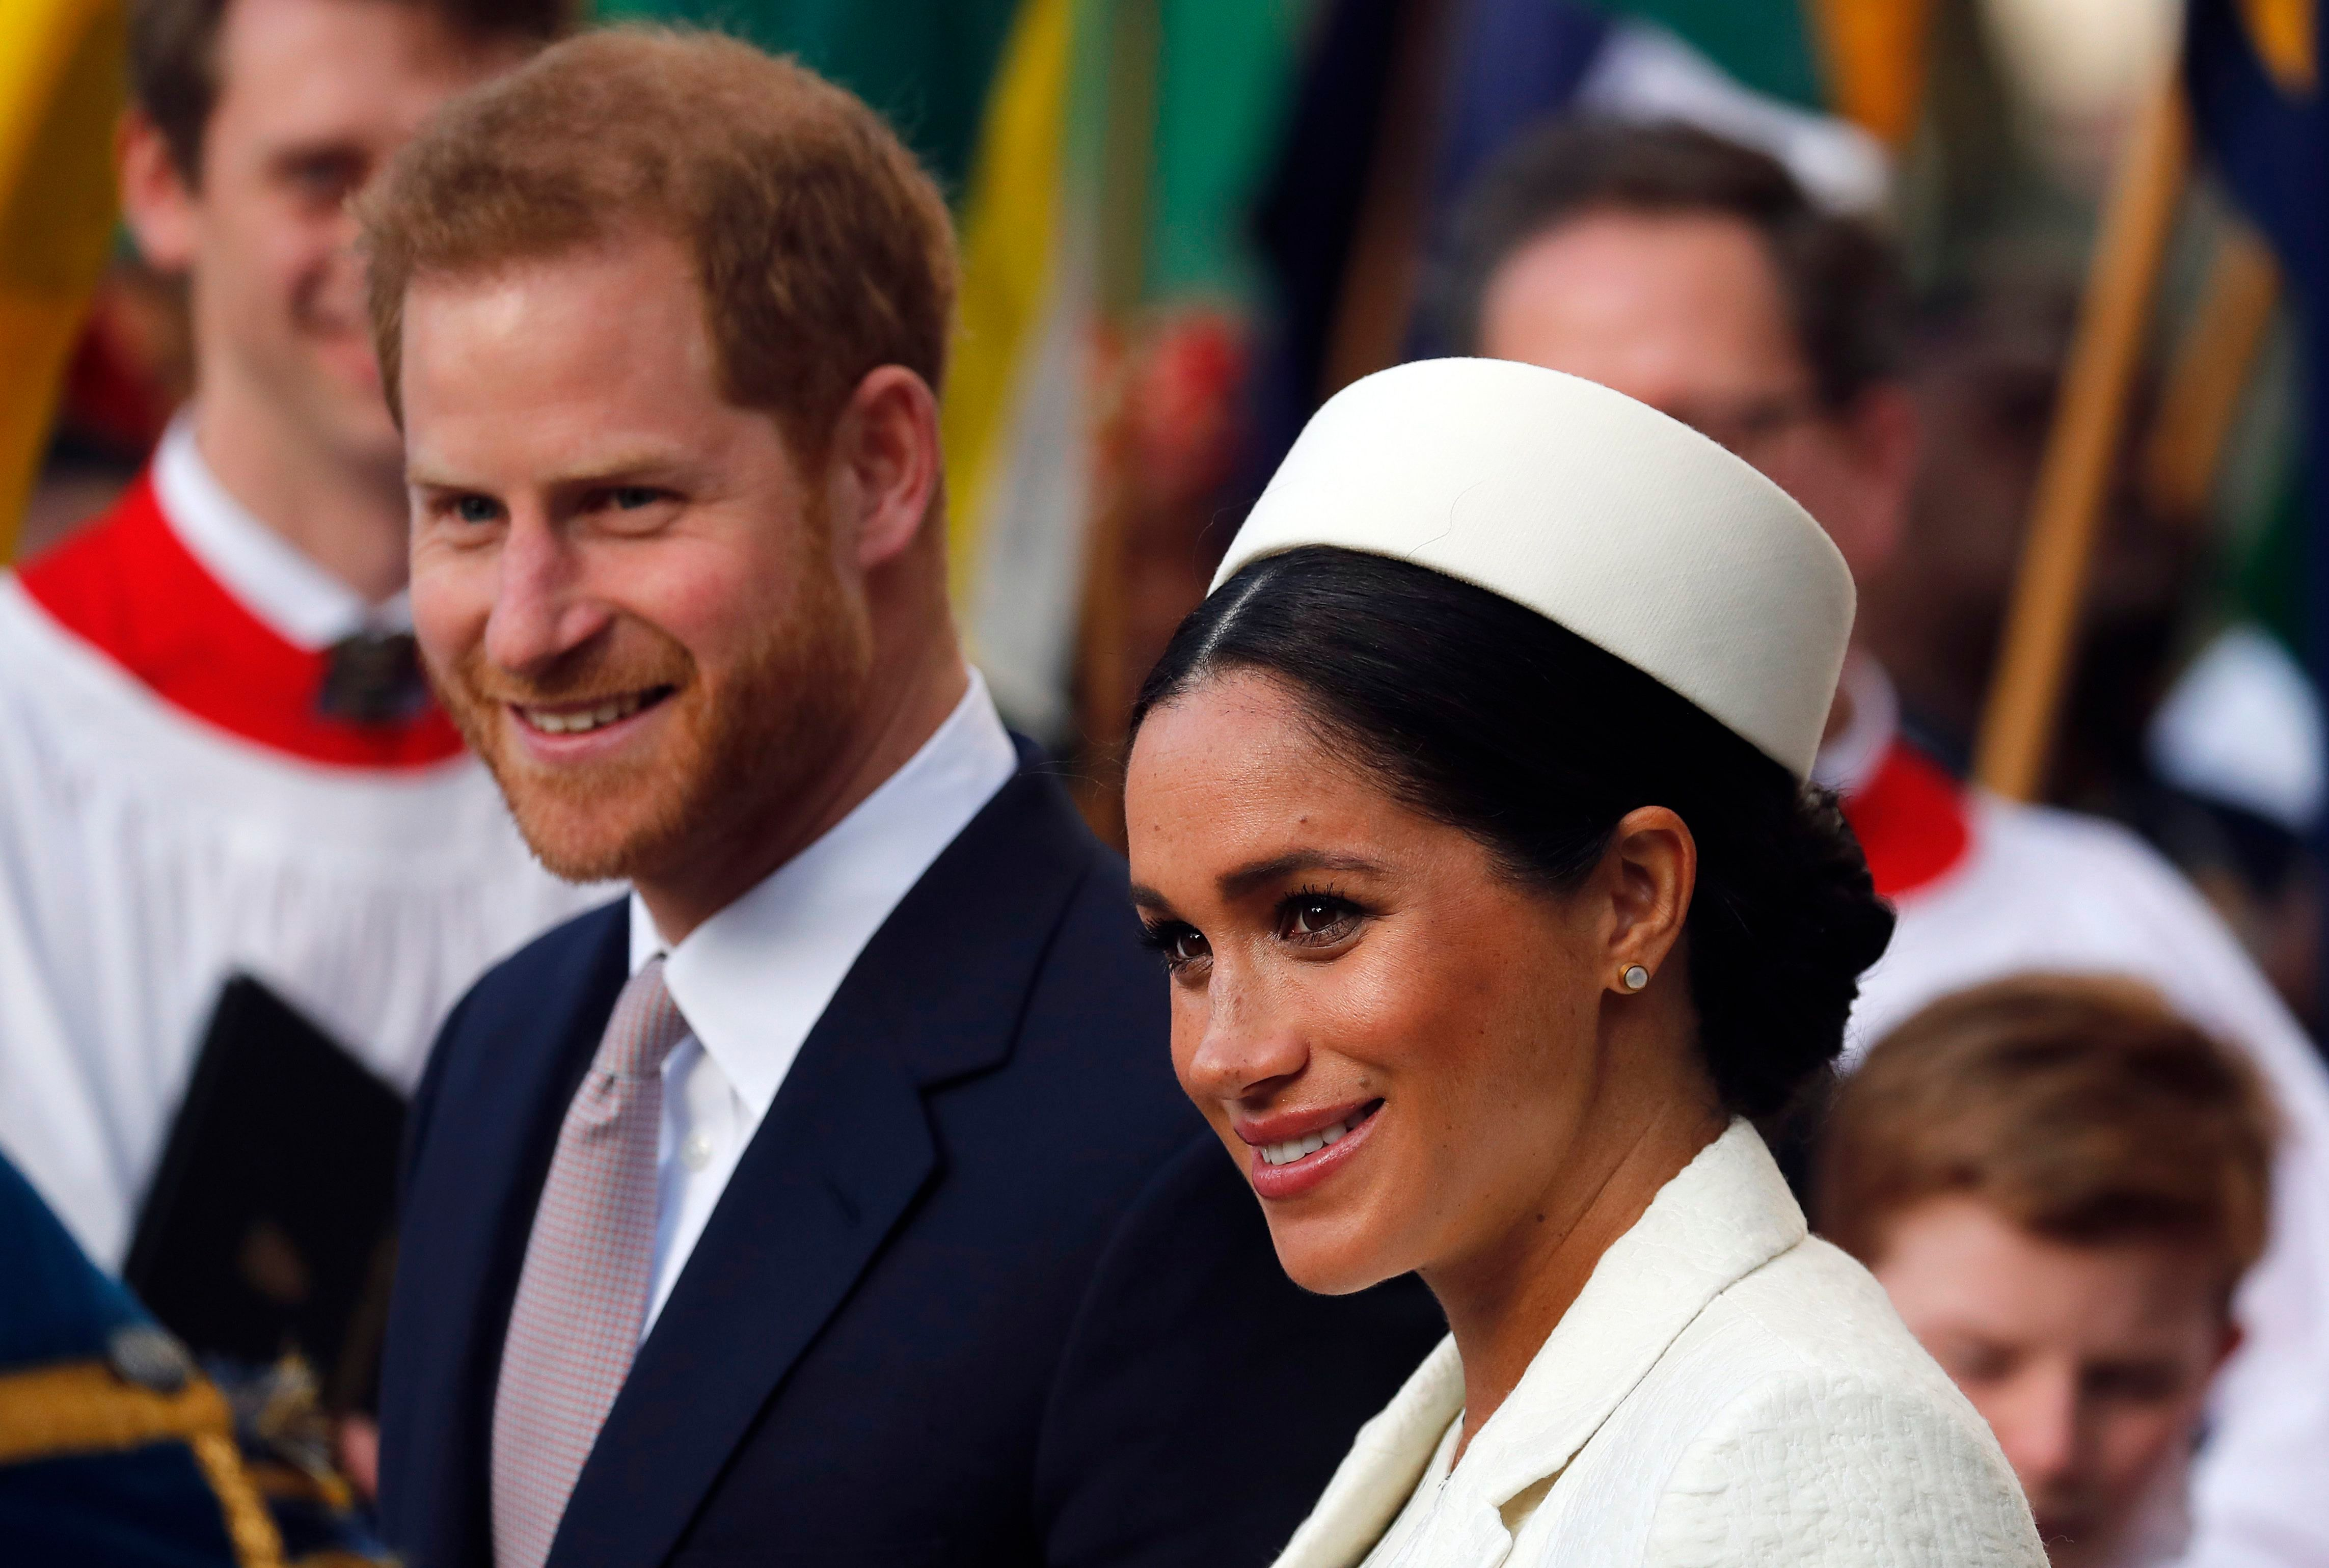 Meghan Duchess of Sussex and Britain's Prince Harry leave after attending the Commonwealth Service at Westminster Abbey on Commonwealth Day in London,. Commonwealth Day has a special significance this year, as 2019 marks the 70th anniversary of the modern Commonwealth - a global network of 53 countries and almost 2.4 billion people, a third of the world's population, of whom 60 percent are under 30 years oldRoyals, London, United Kingdom - 11 Mar 2019